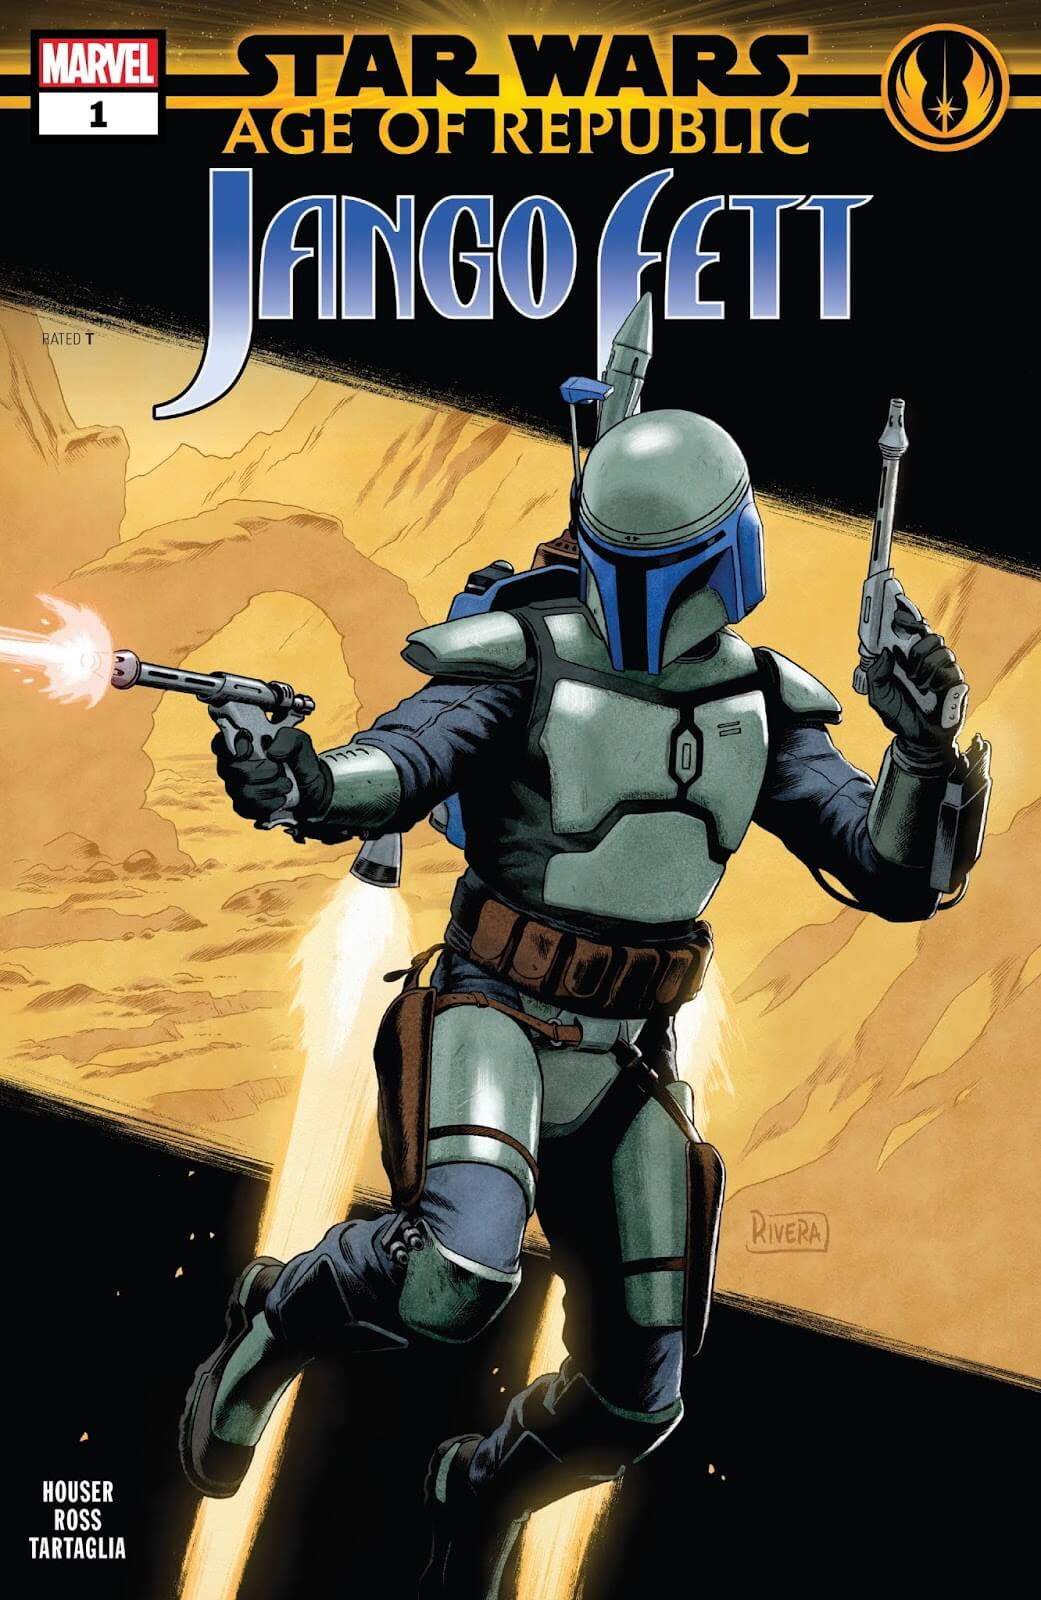 Age of Republic Jango Fett